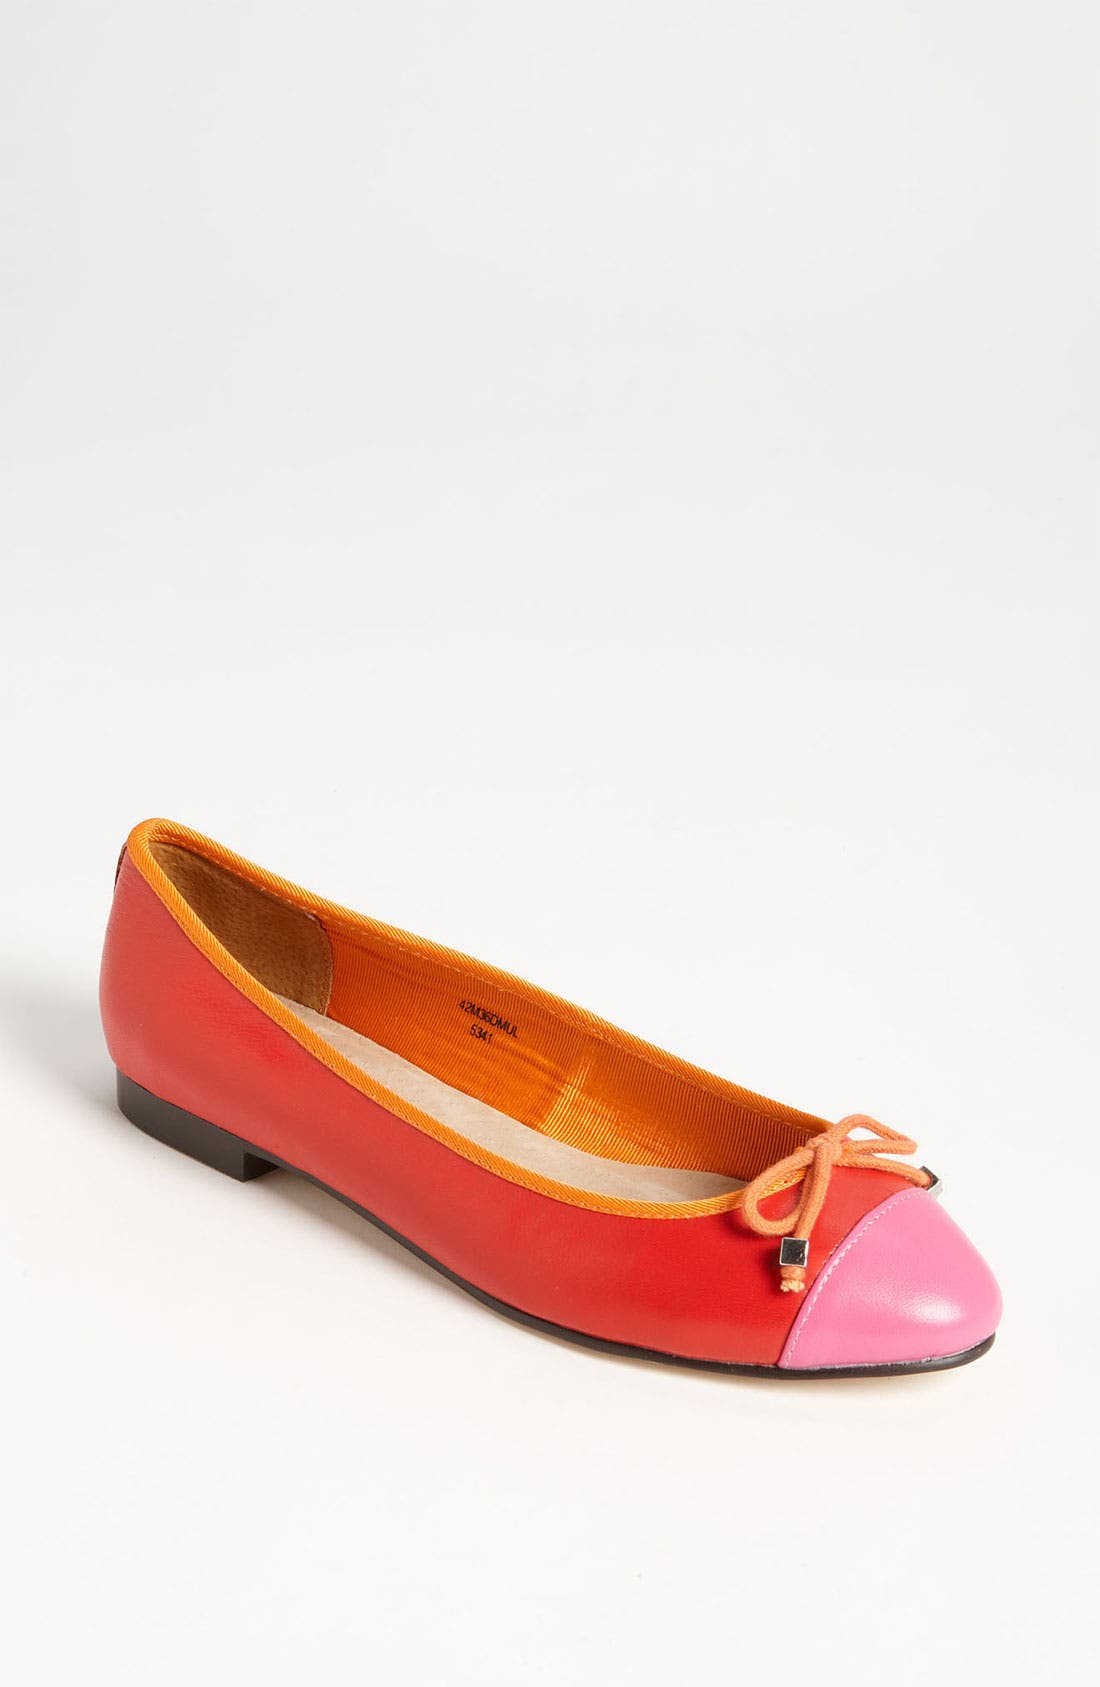 Alternate Image 1 Selected - Topshop 'Milano' Ballerina